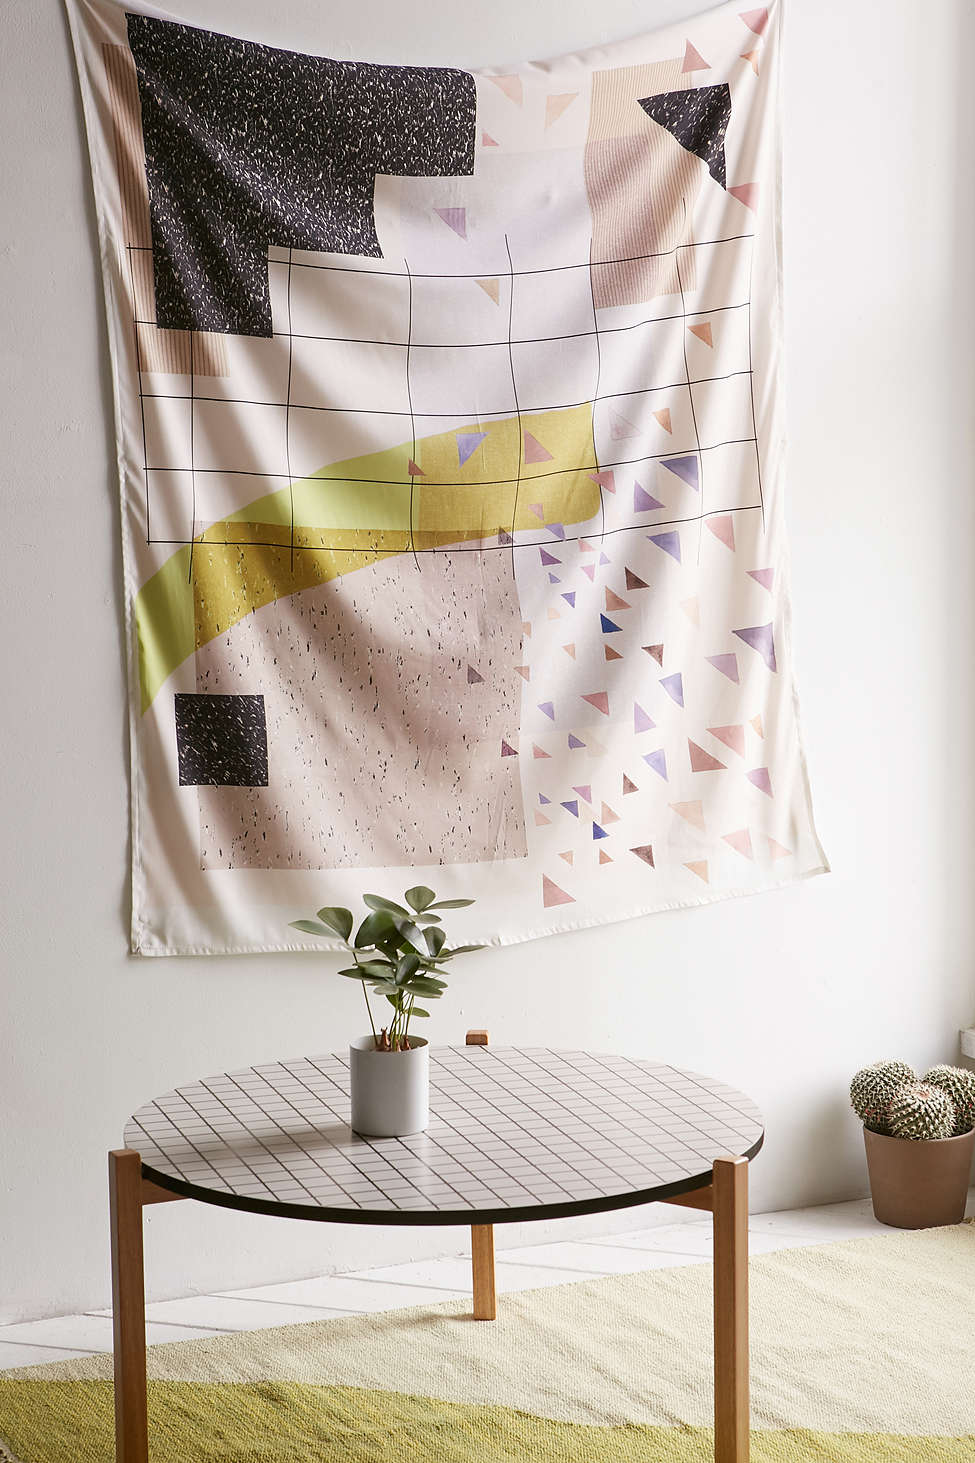 Terrazzo tapestry from Urban Outfitters